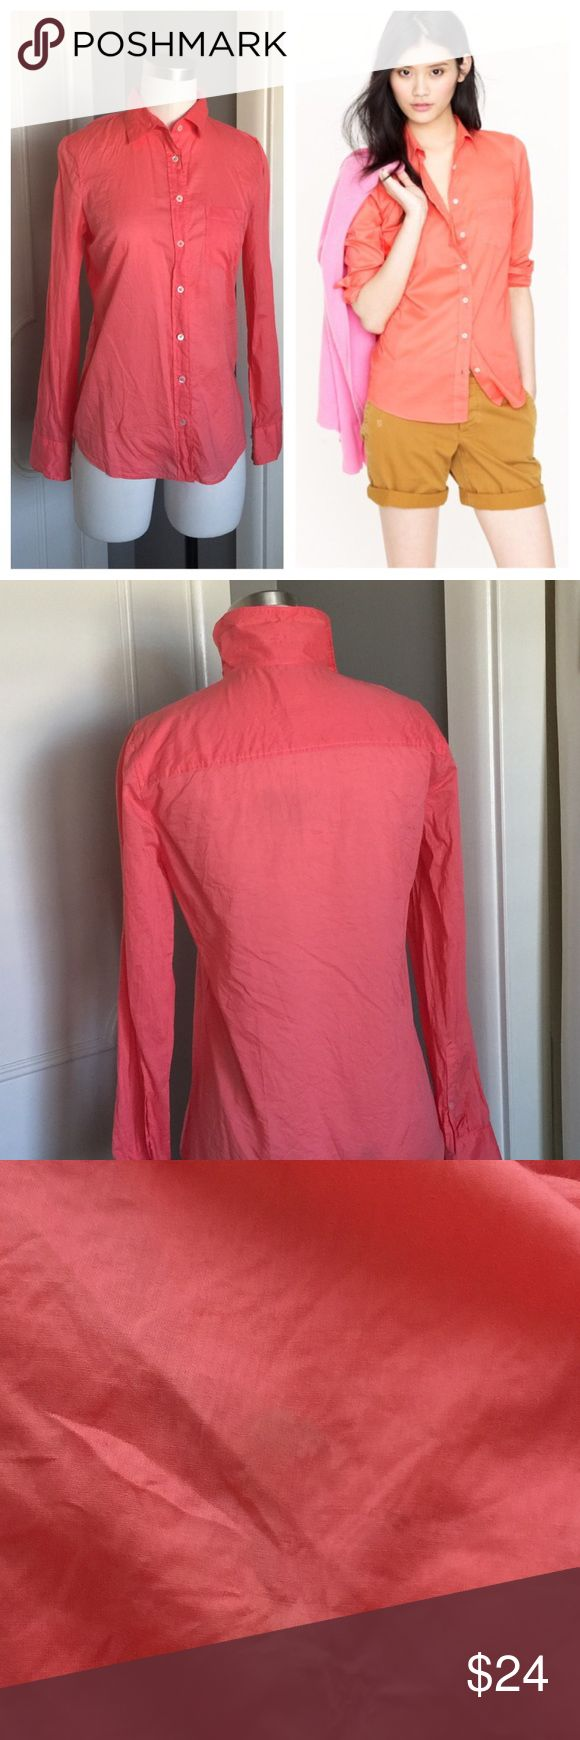 "J. Crew Indian voile boy shirt Beautiful J.Crew Indian voile boy shirt. Bust 16"". Length roughly 23 1/2"". Small spot located on the right shoulder blade, could potentially be removed with a tide pen (please see photos). Overall good condition. Purchased from a J. Crew retail store. No trades please. J. Crew Tops Button Down Shirts"